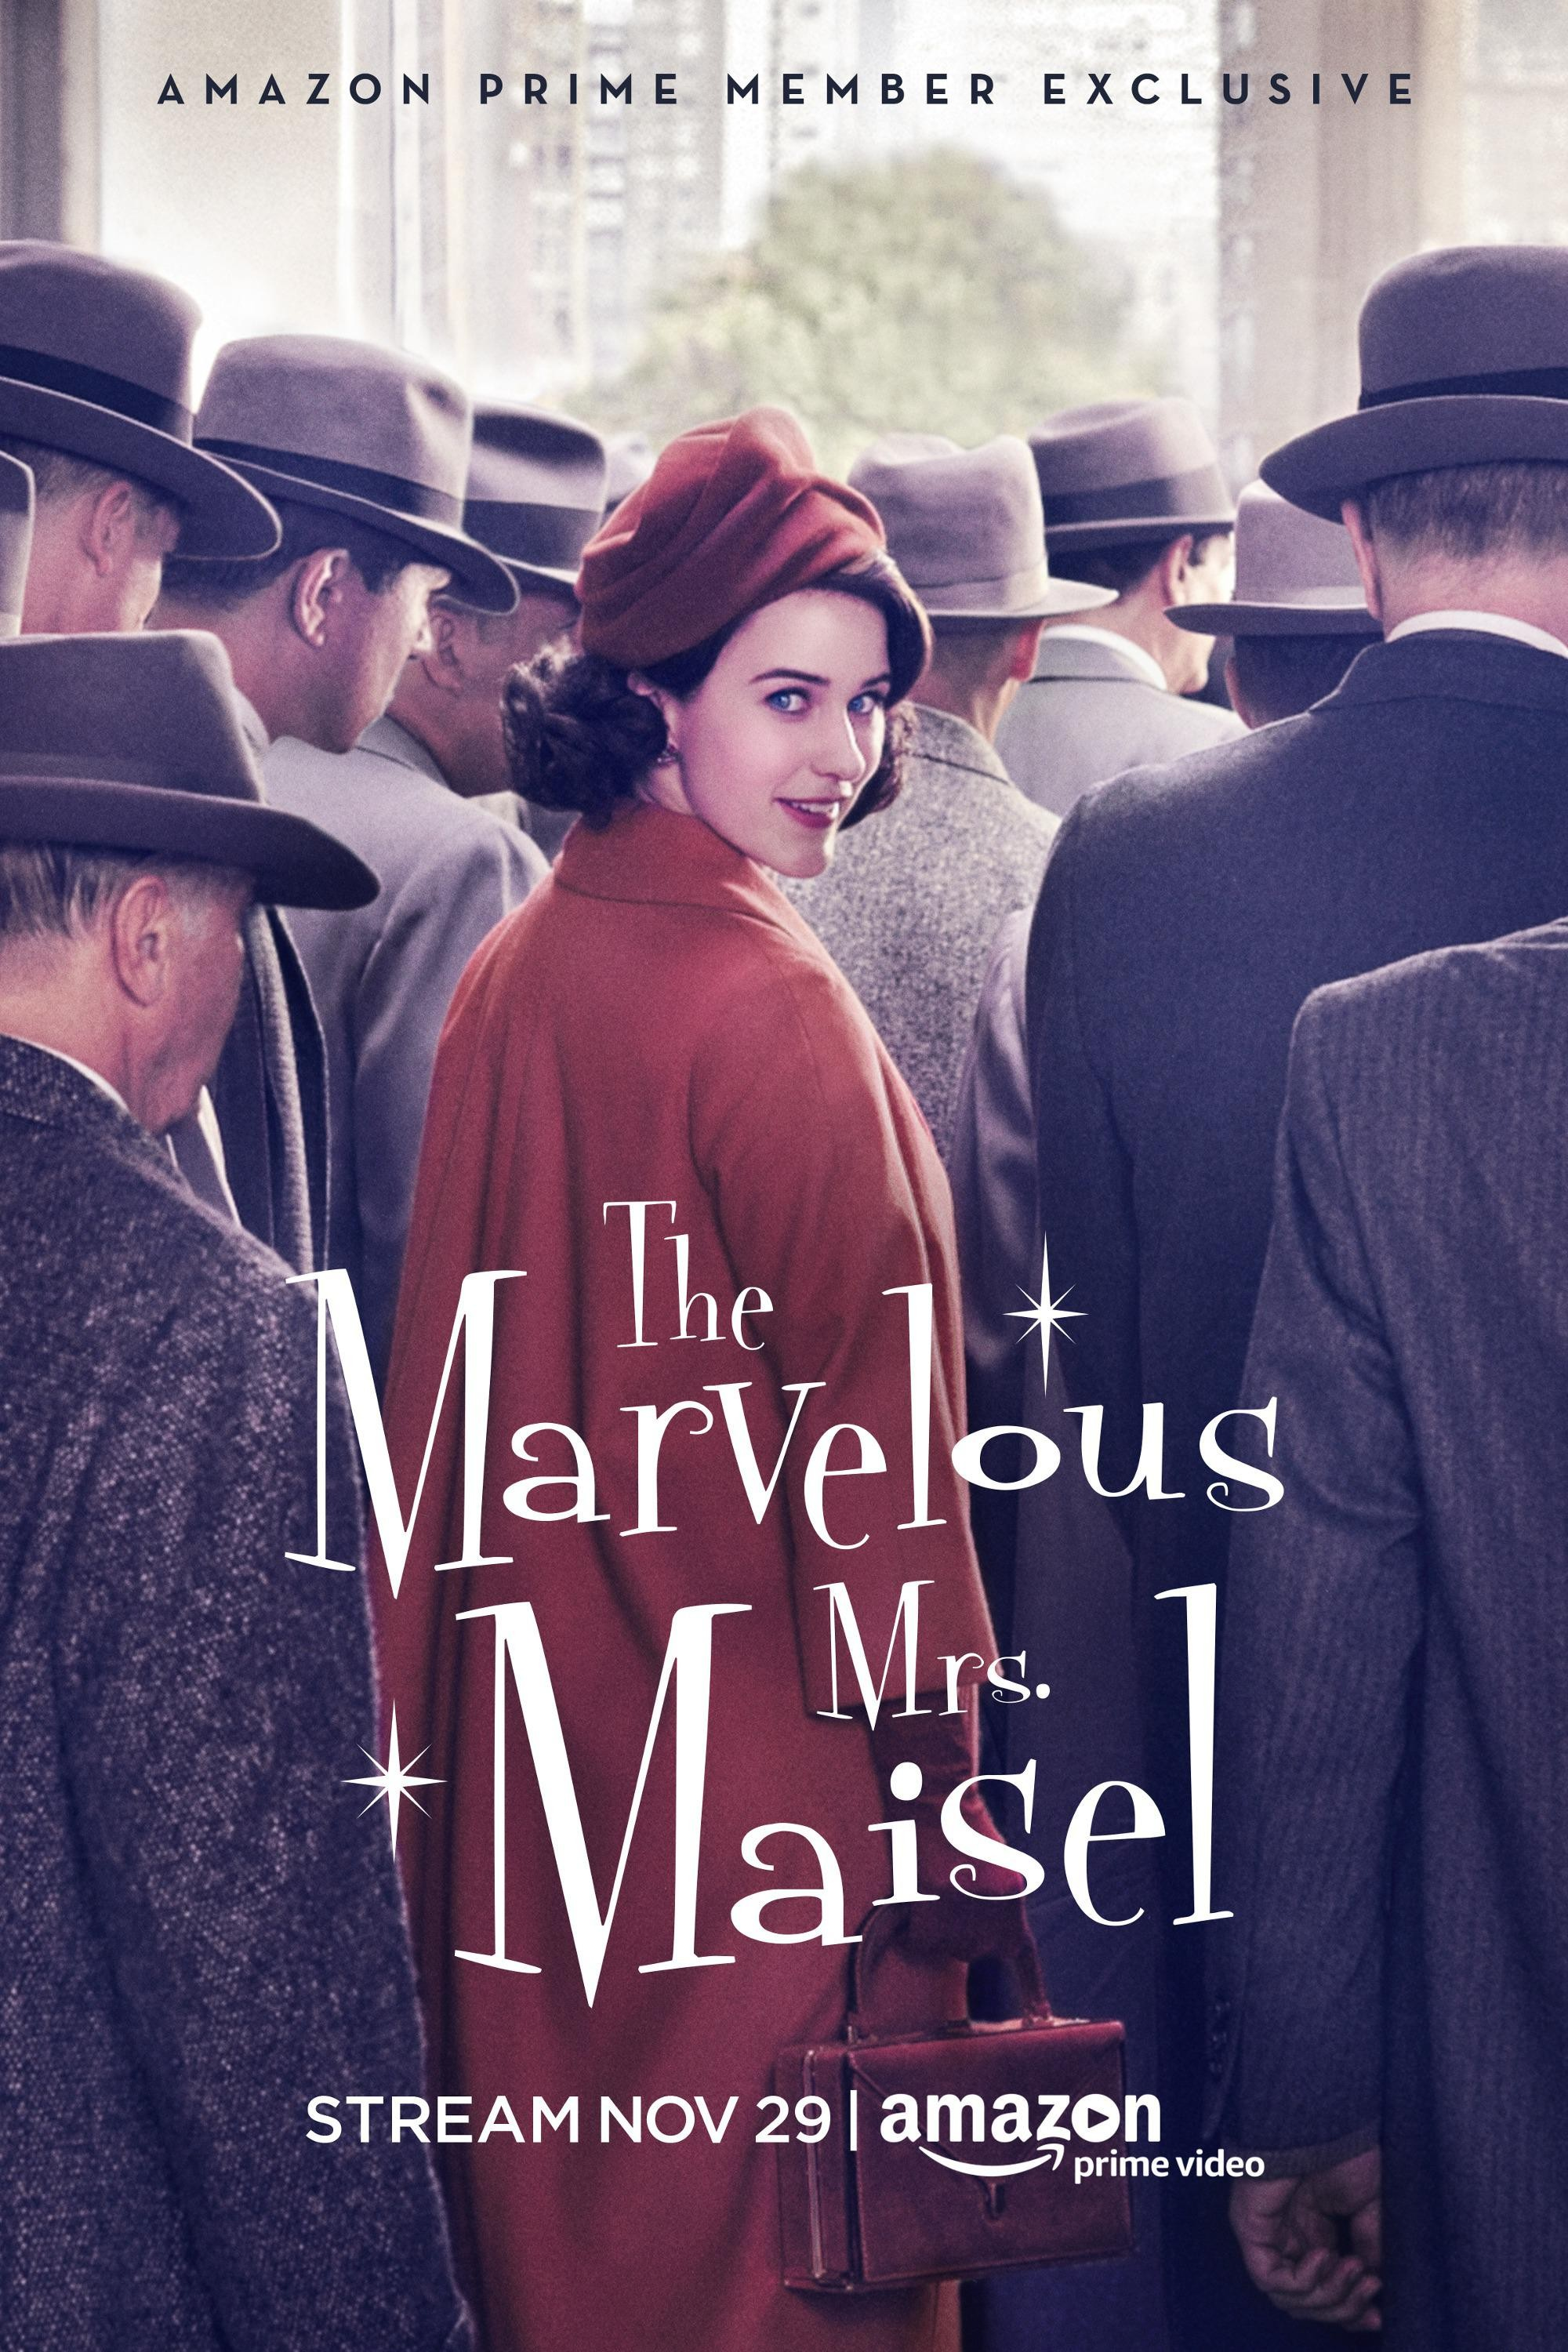 The Marvelous Mrs. Maisel 了不起的麦瑟尔女士